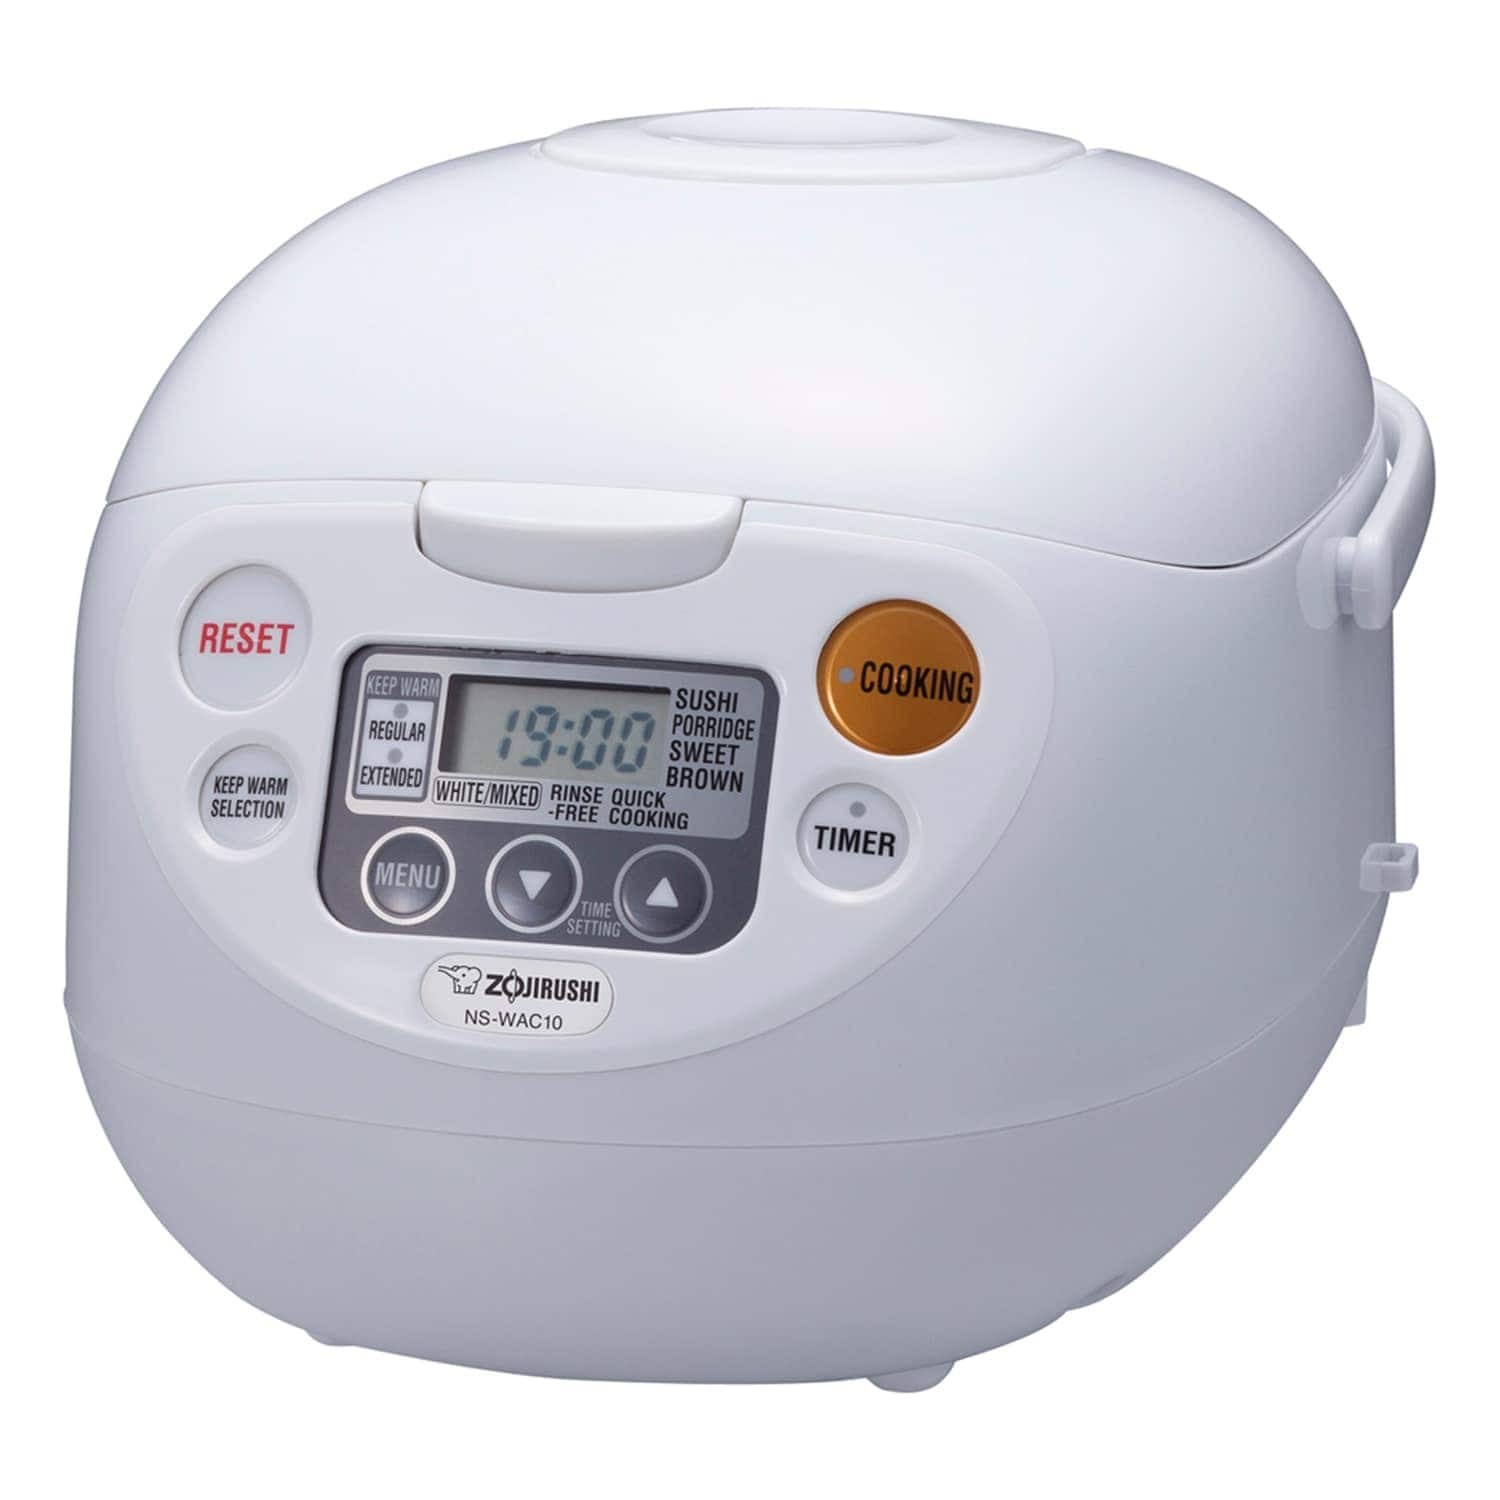 Zojirushi Rice Cooker & Warmer (Ns-wpc10 5.5 Cups) $103.99 and free shipping + Kohl's